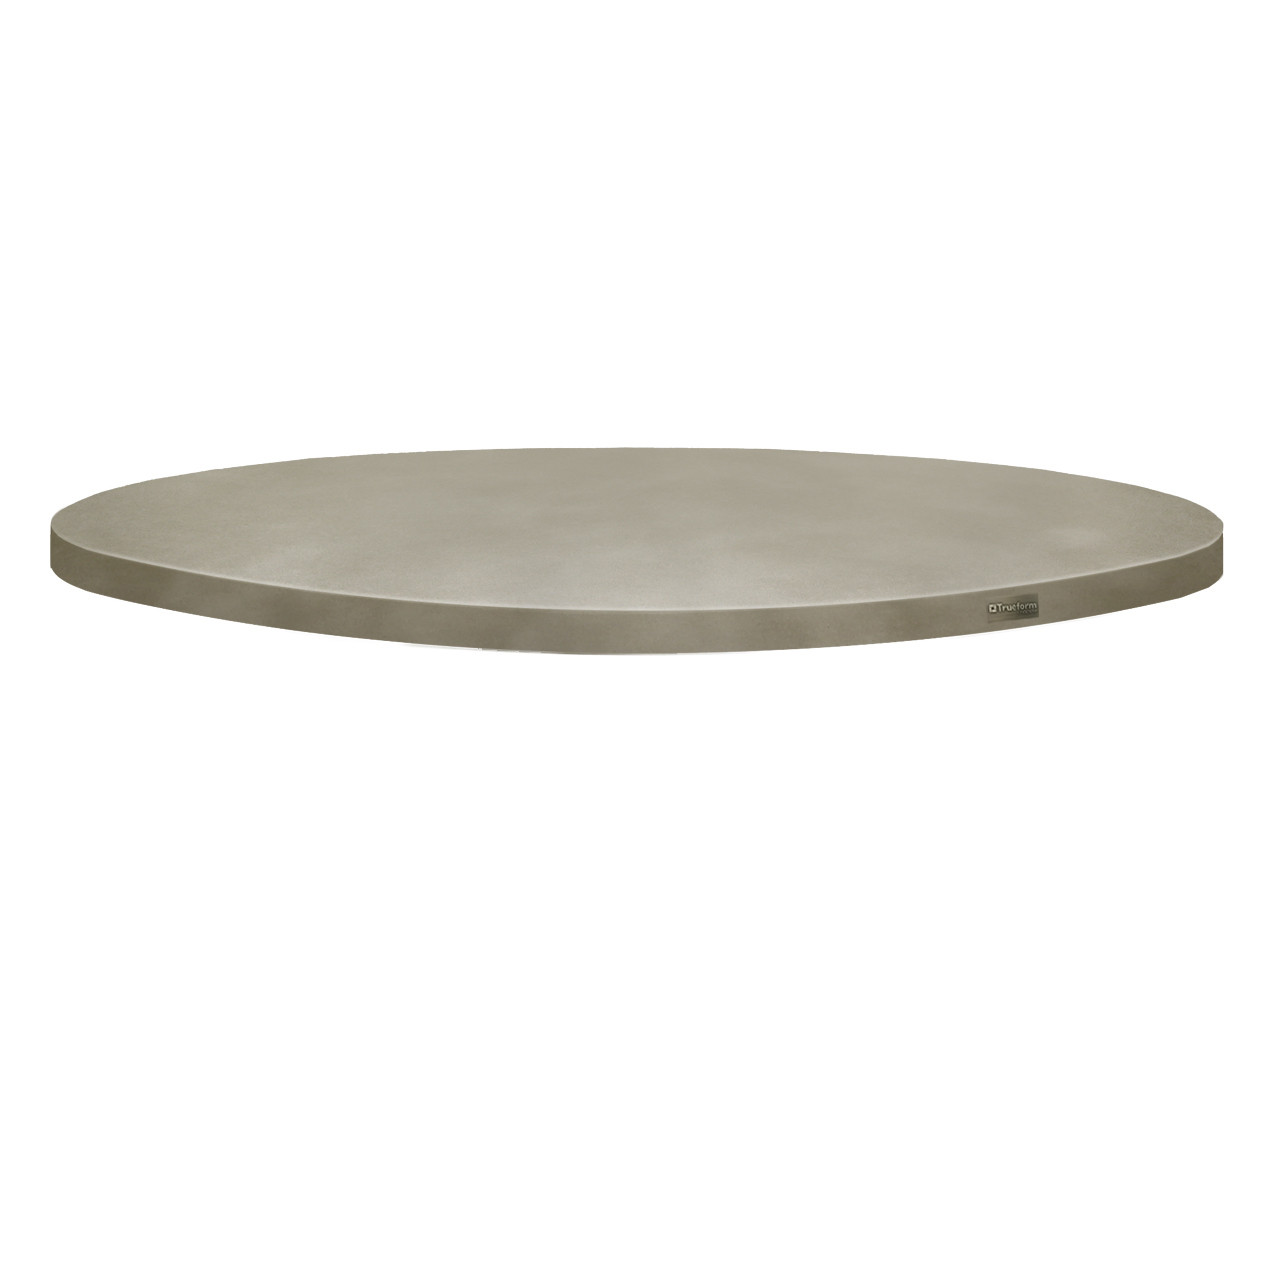 Round Table Tops Round Concrete Table Top 2